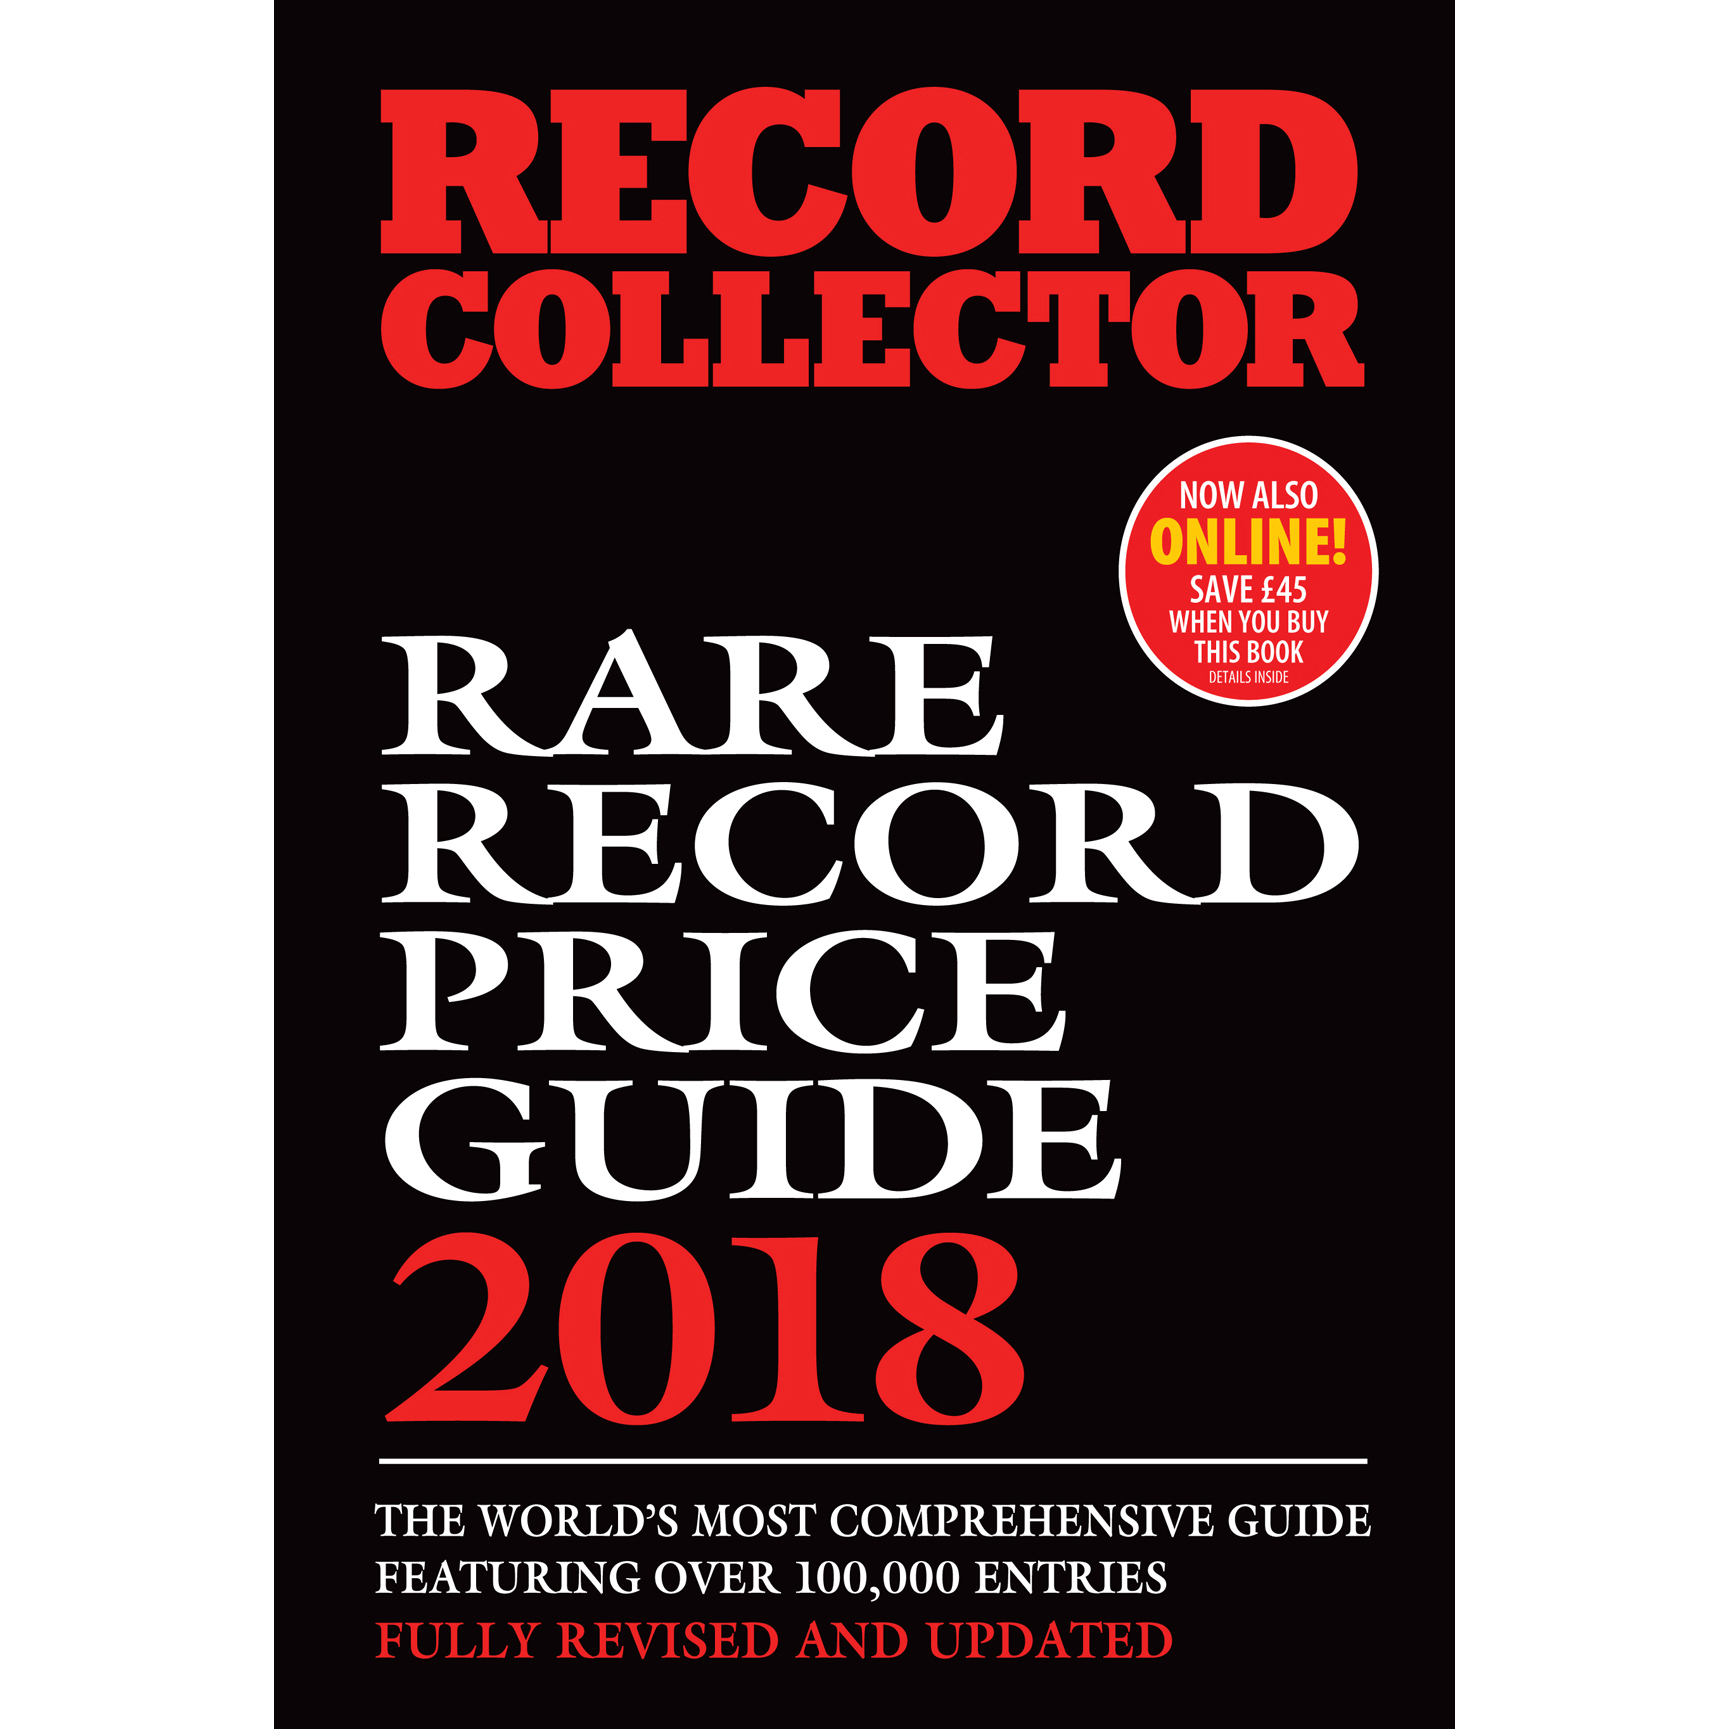 Rare Record Price Guide 2018 Softback